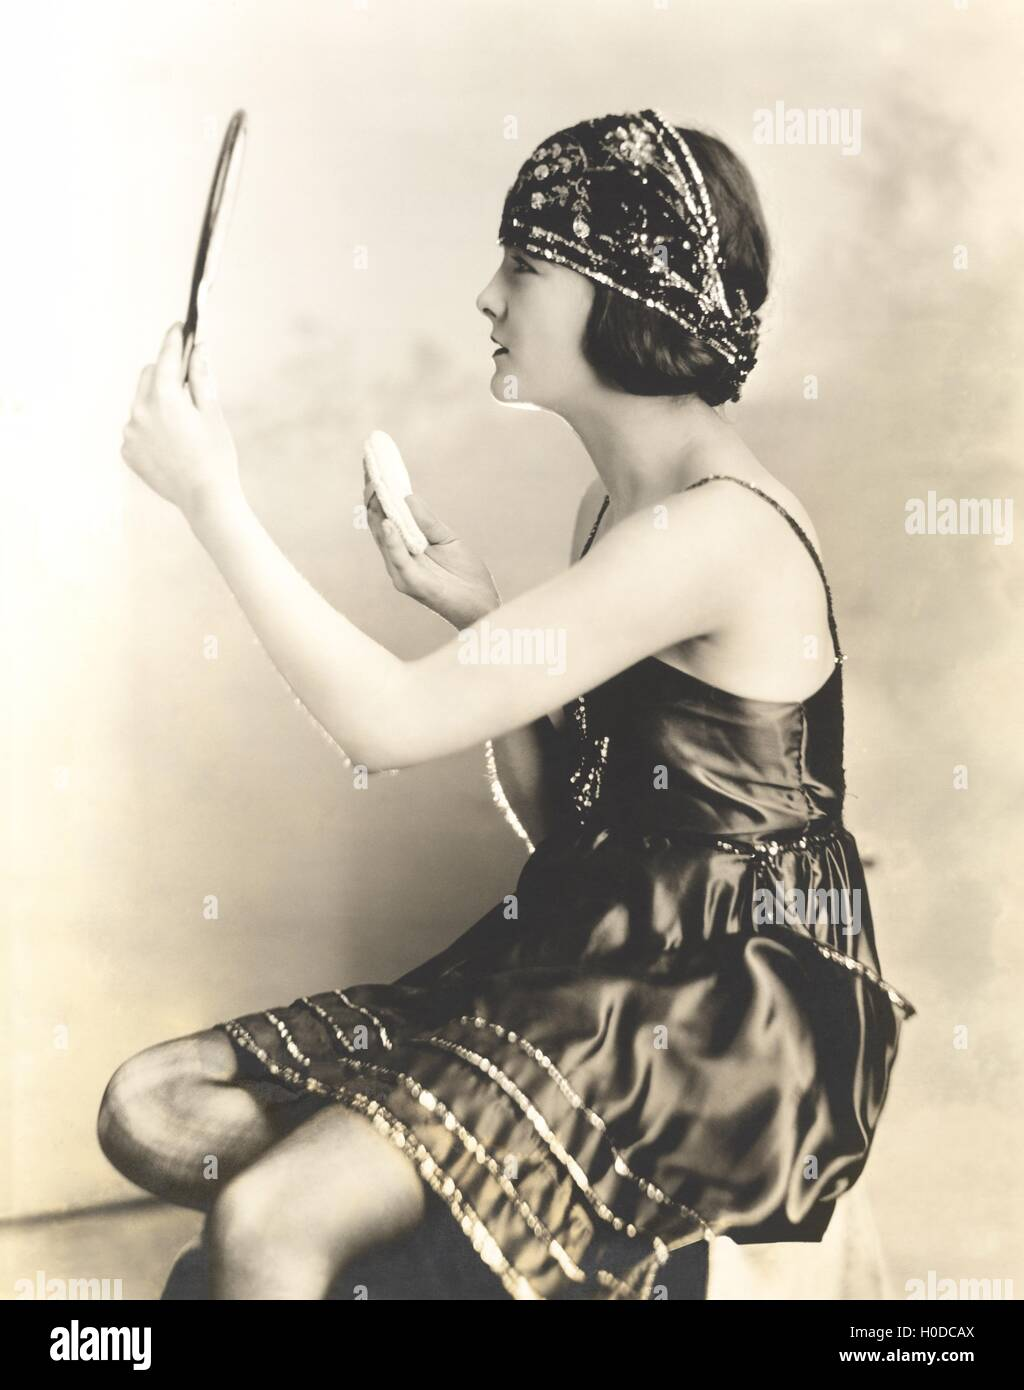 Side view of young woman holding powder puff and mirror - Stock Image